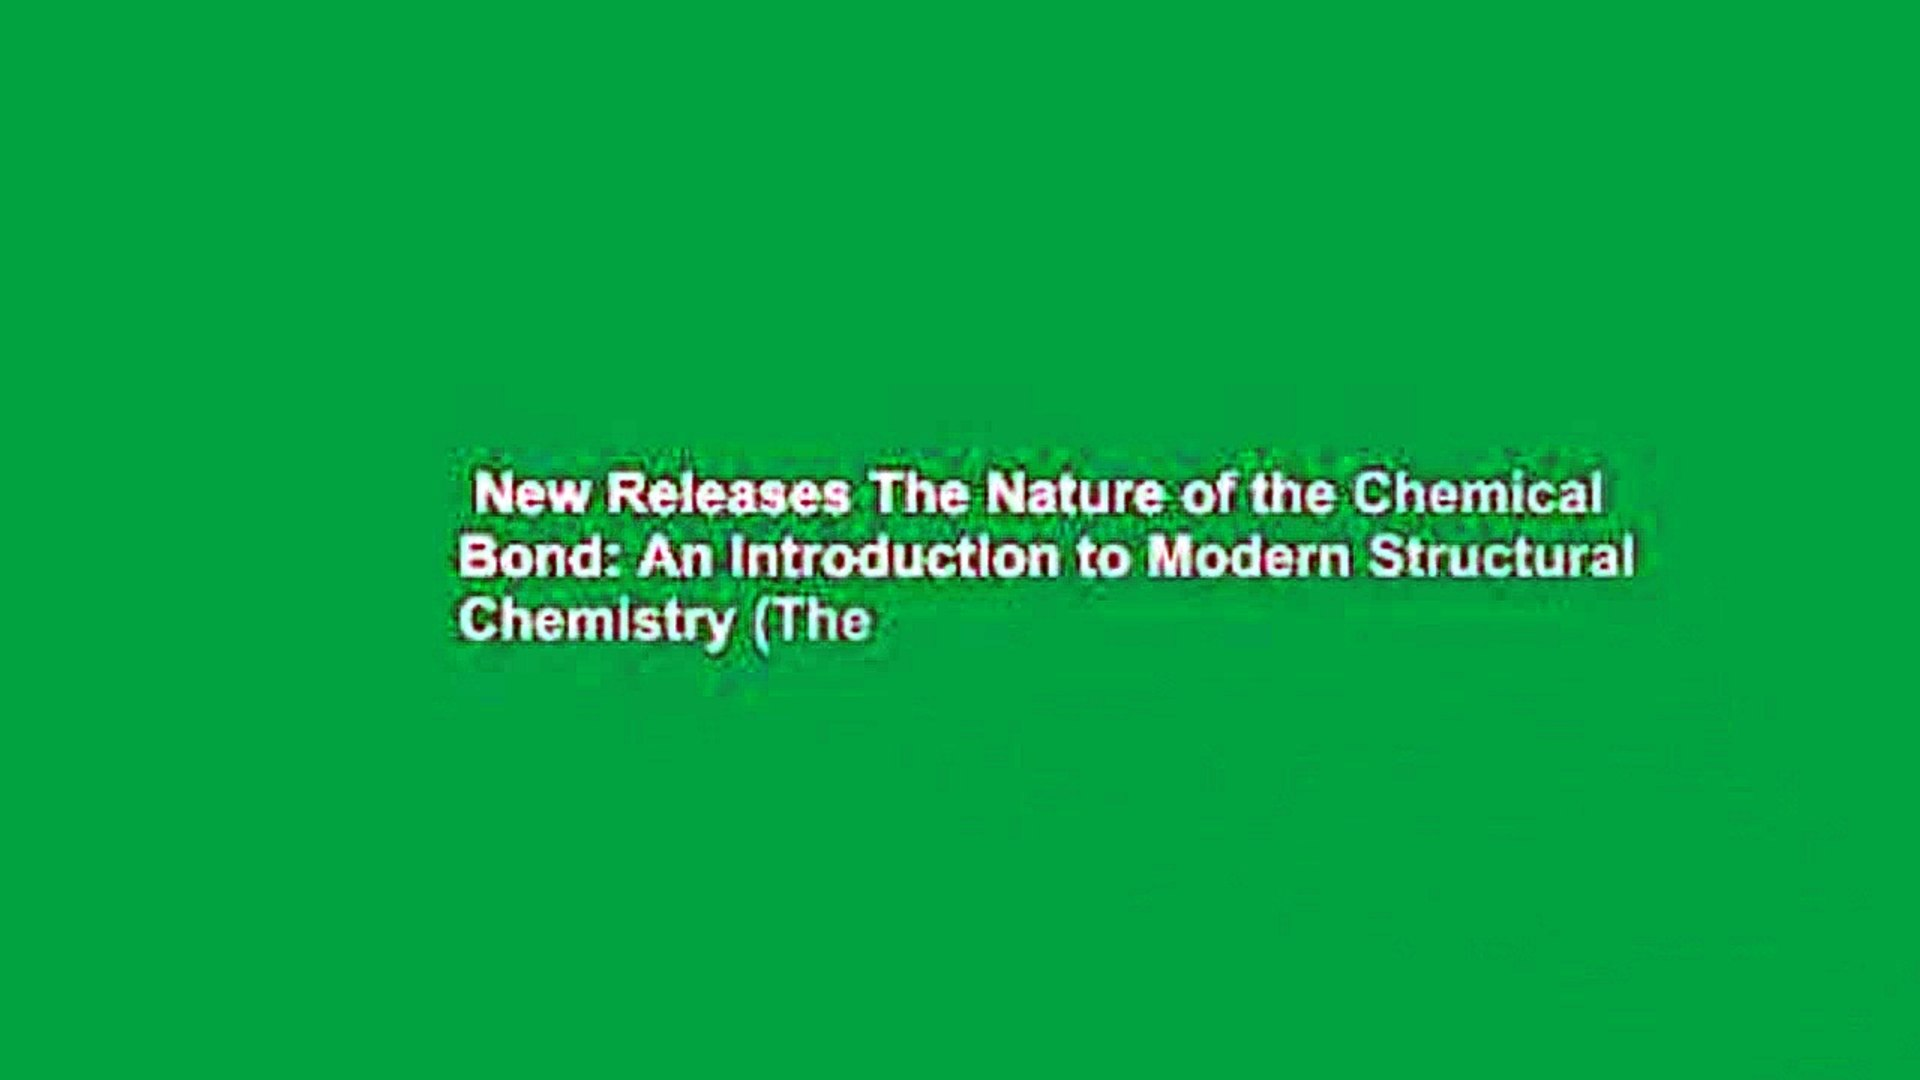 The Nature of the Chemical Bond An Introduction to Modern Structural Chemistry